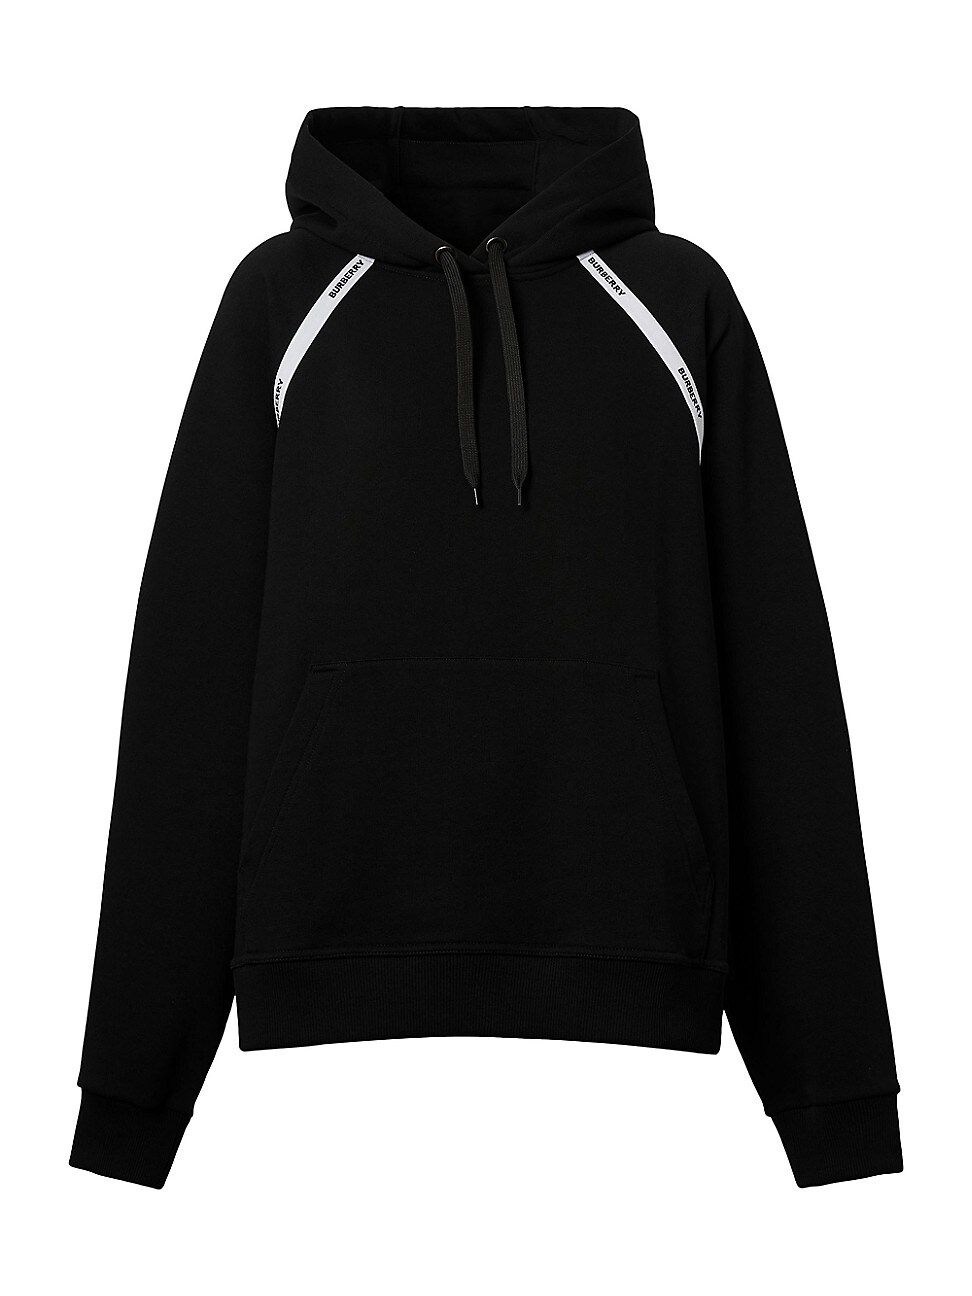 Burberry Hoodies WOMEN'S POULTER TAPE HOODIE